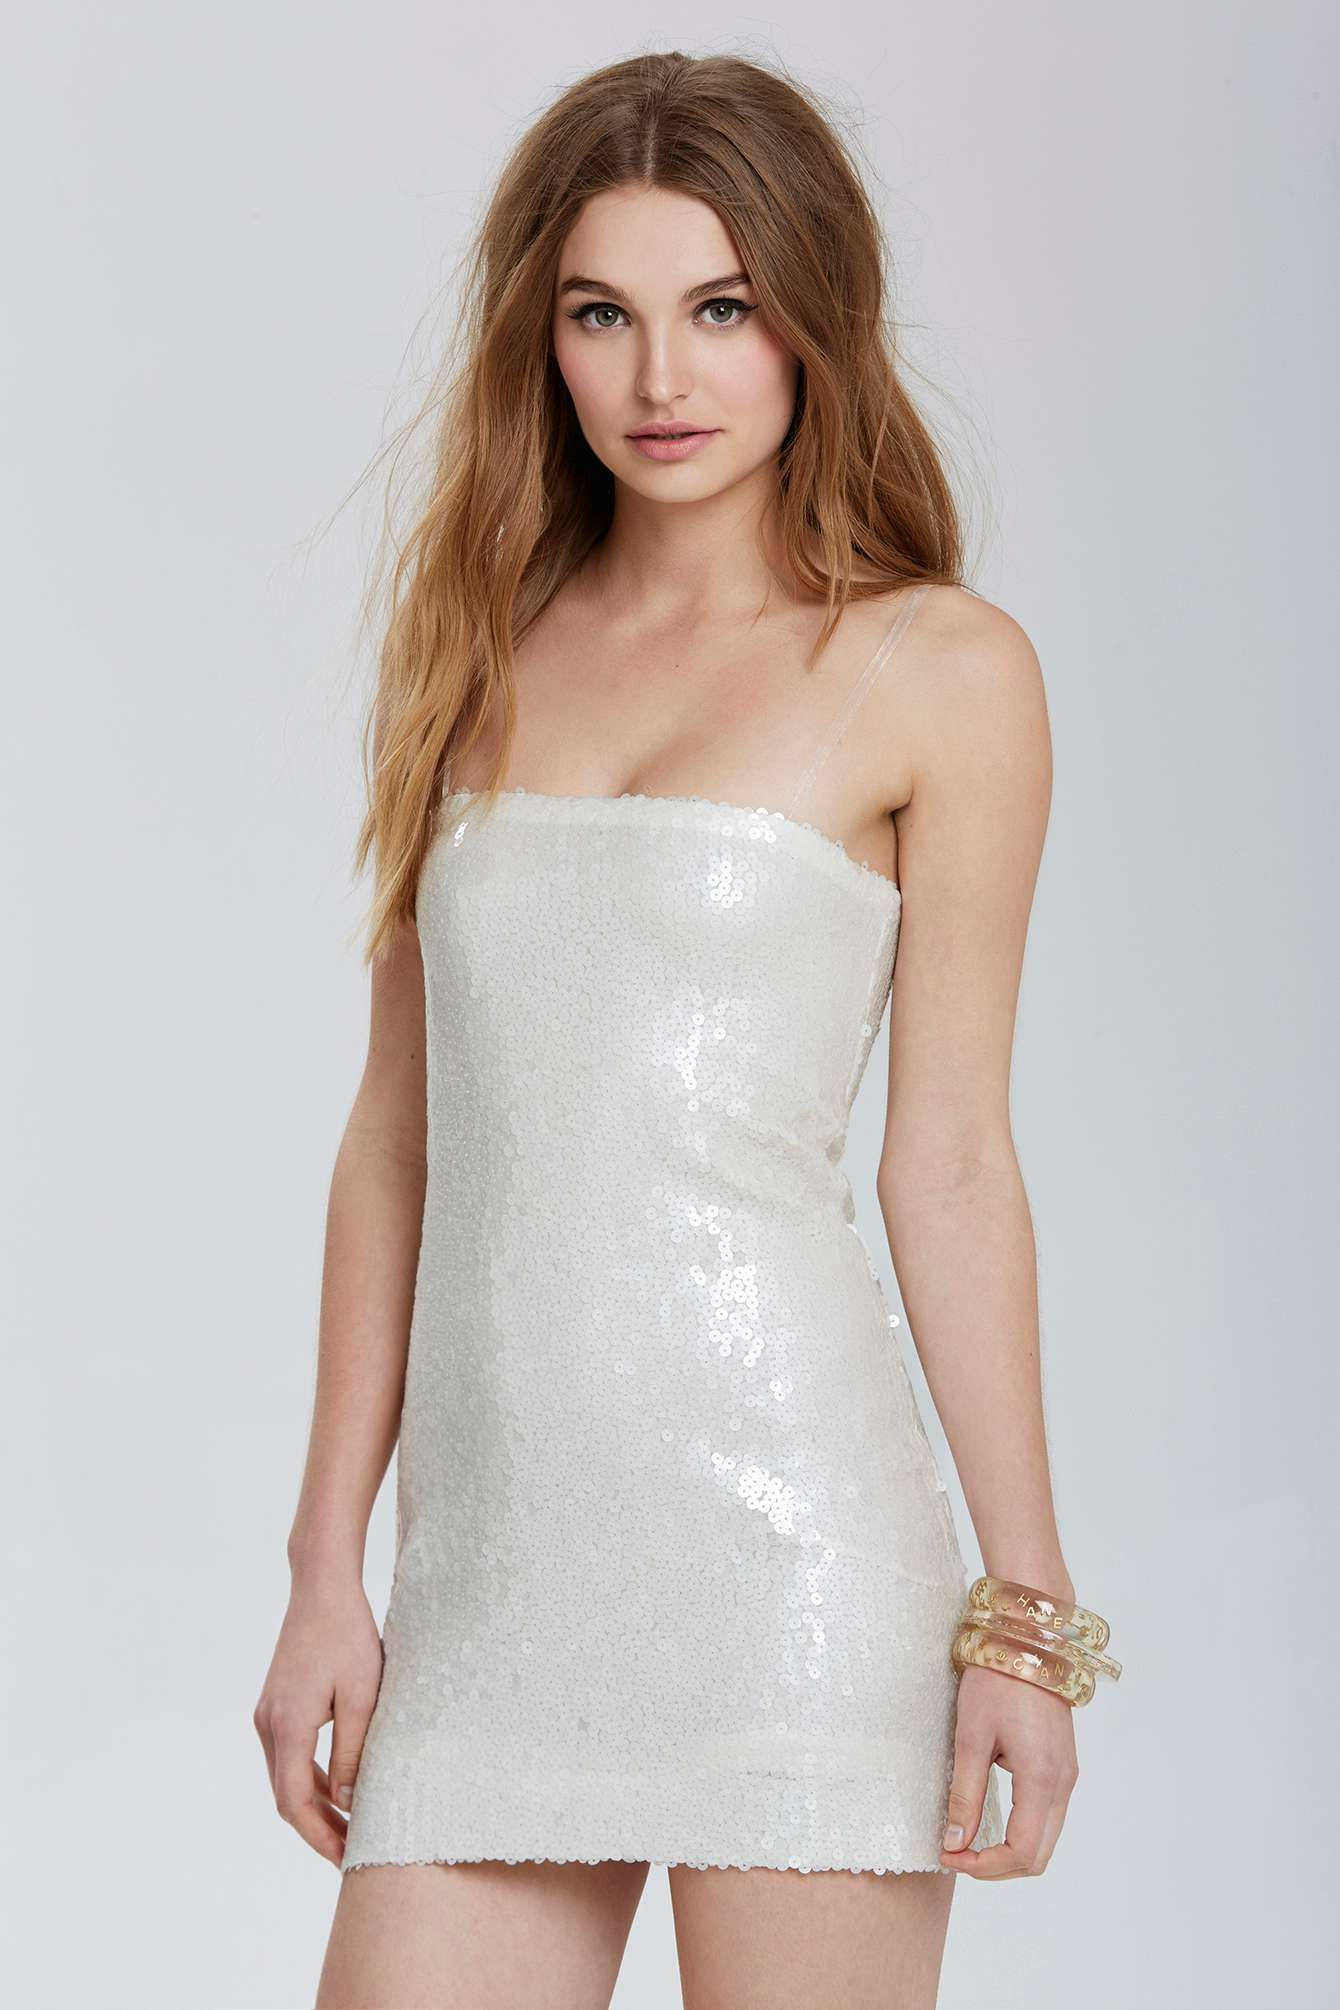 Vintage Chanel Étampes Sequin Dress